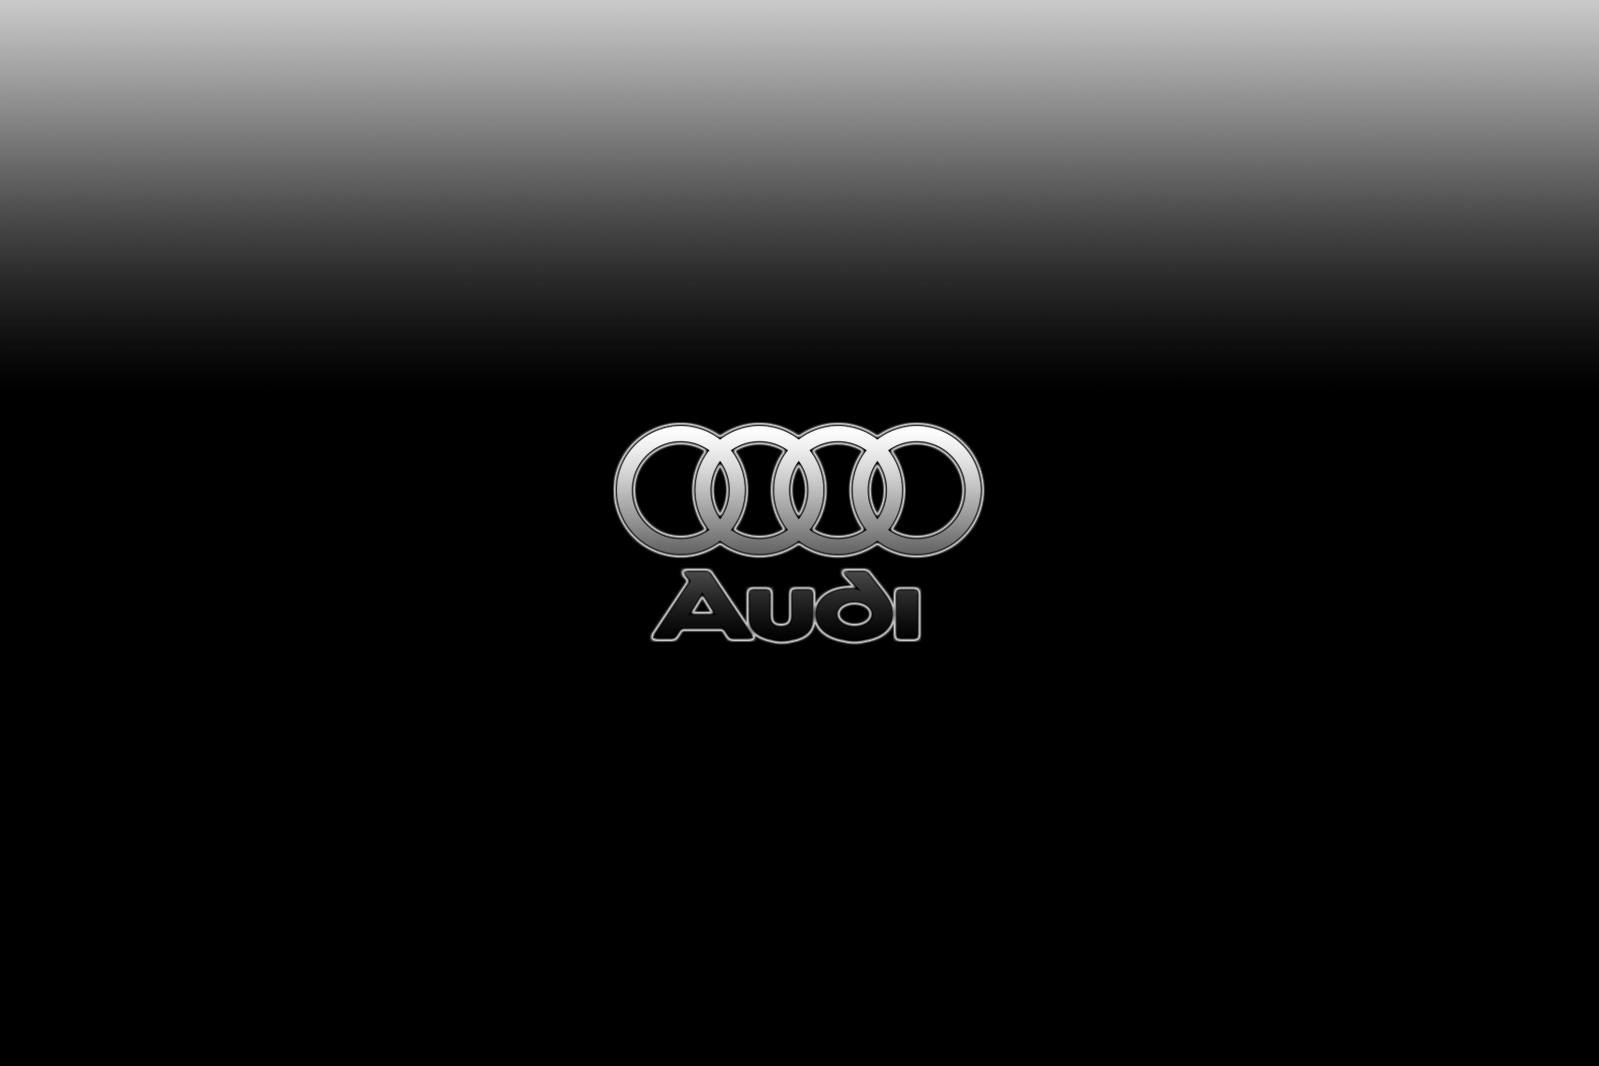 audi logo auto cars concept. Black Bedroom Furniture Sets. Home Design Ideas